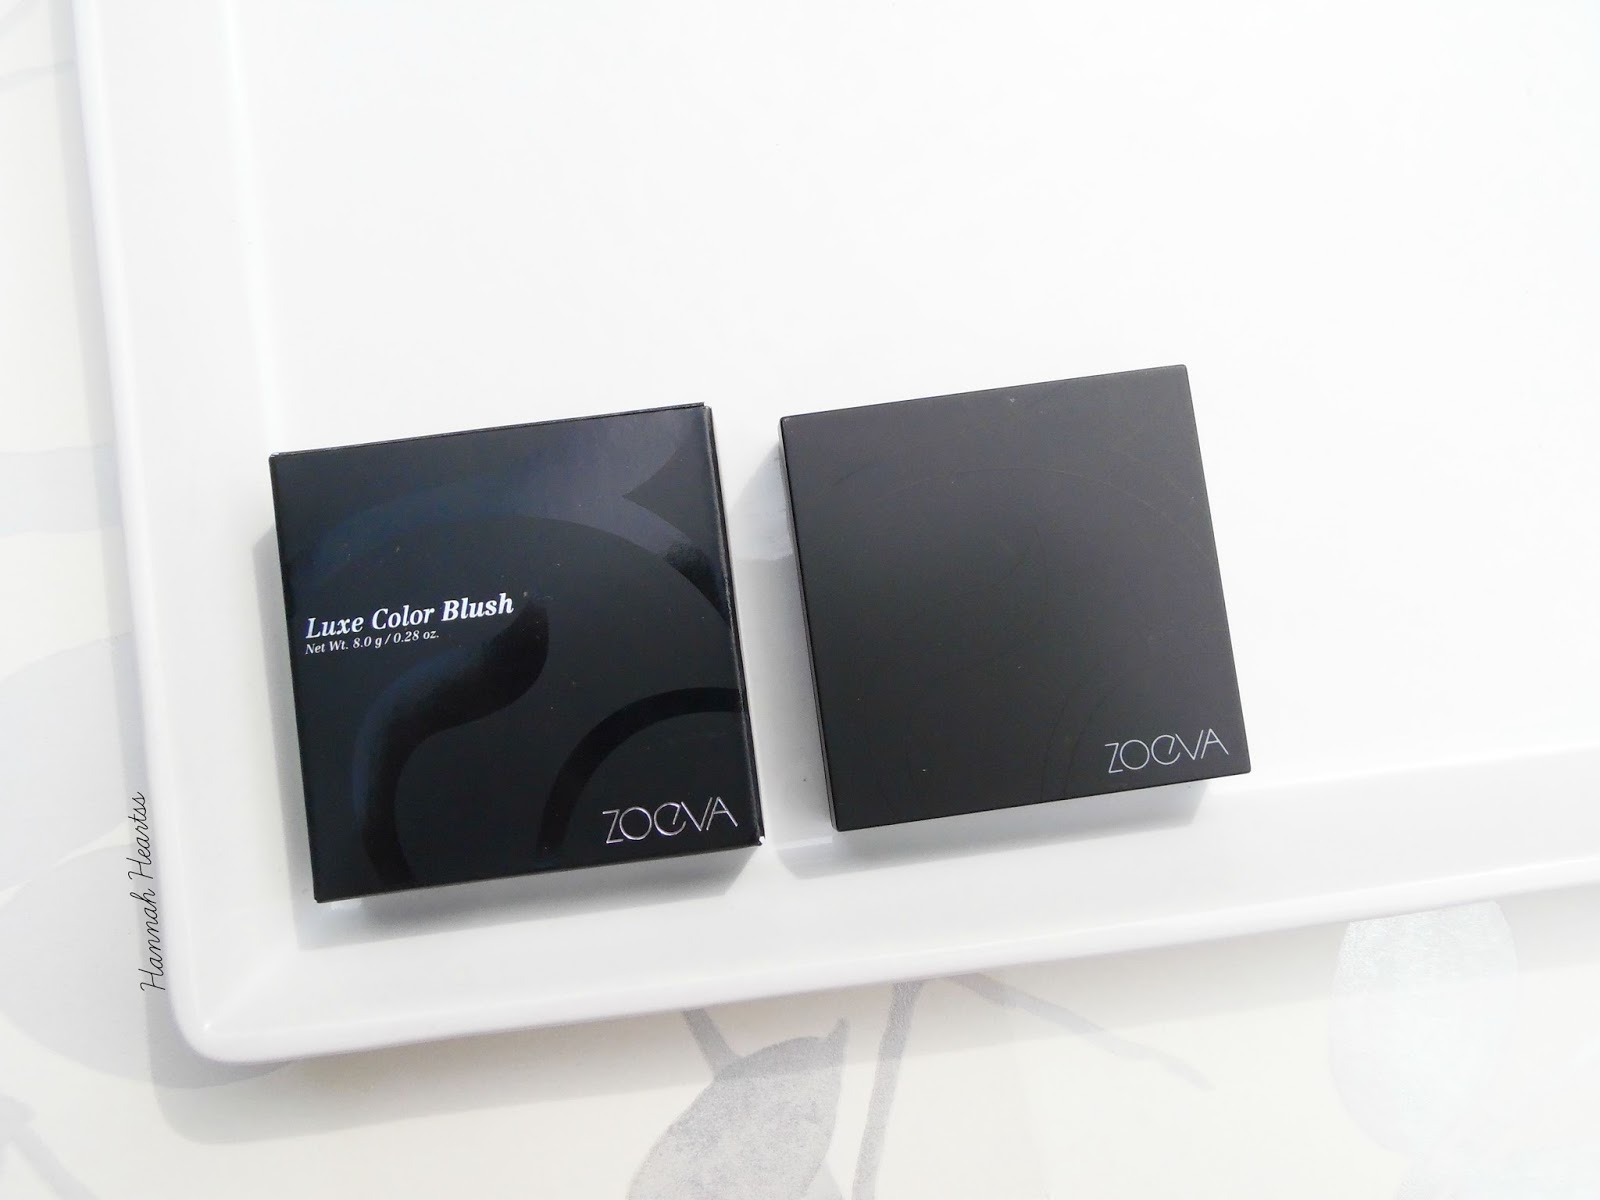 Zoeva Luxe Color Blush in Shy Beauty